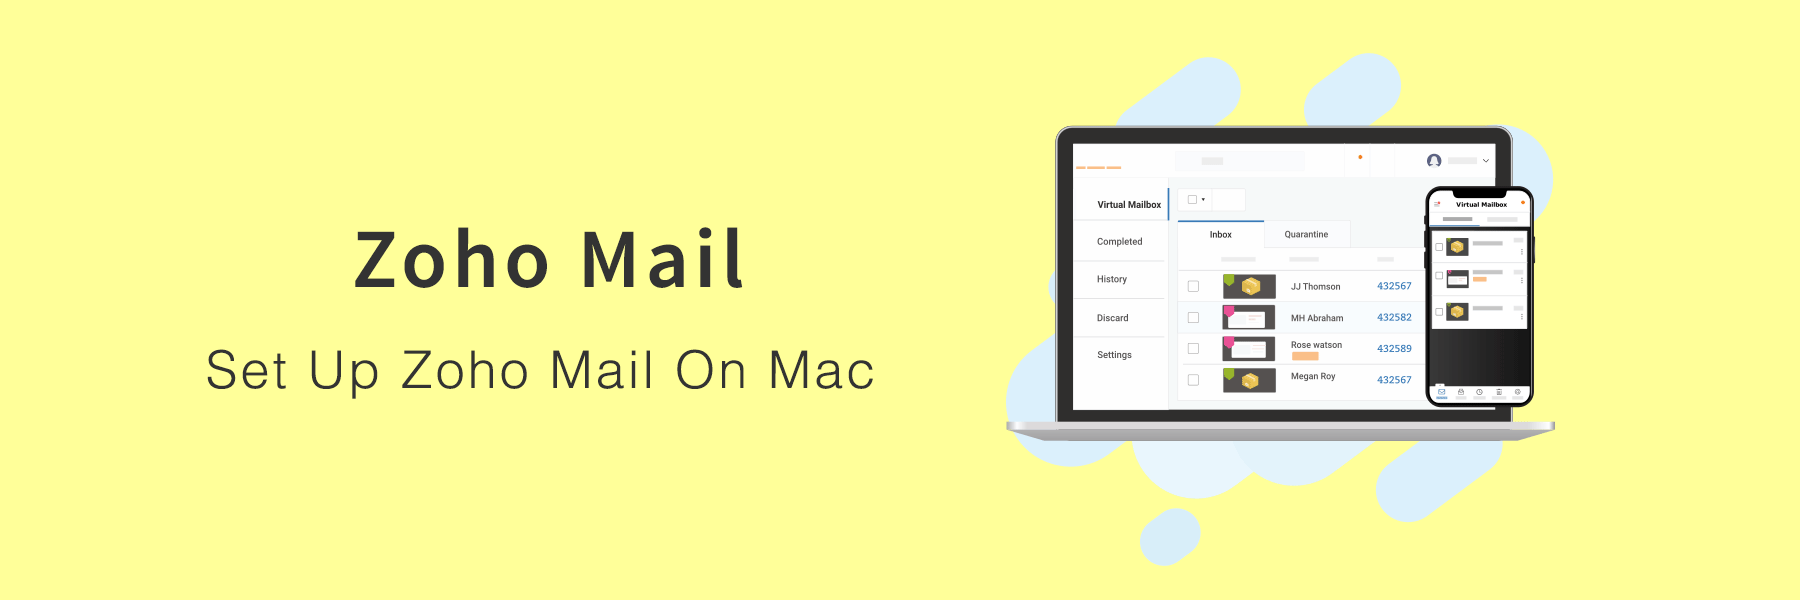 How To Set Up Zoho Mail On Mac